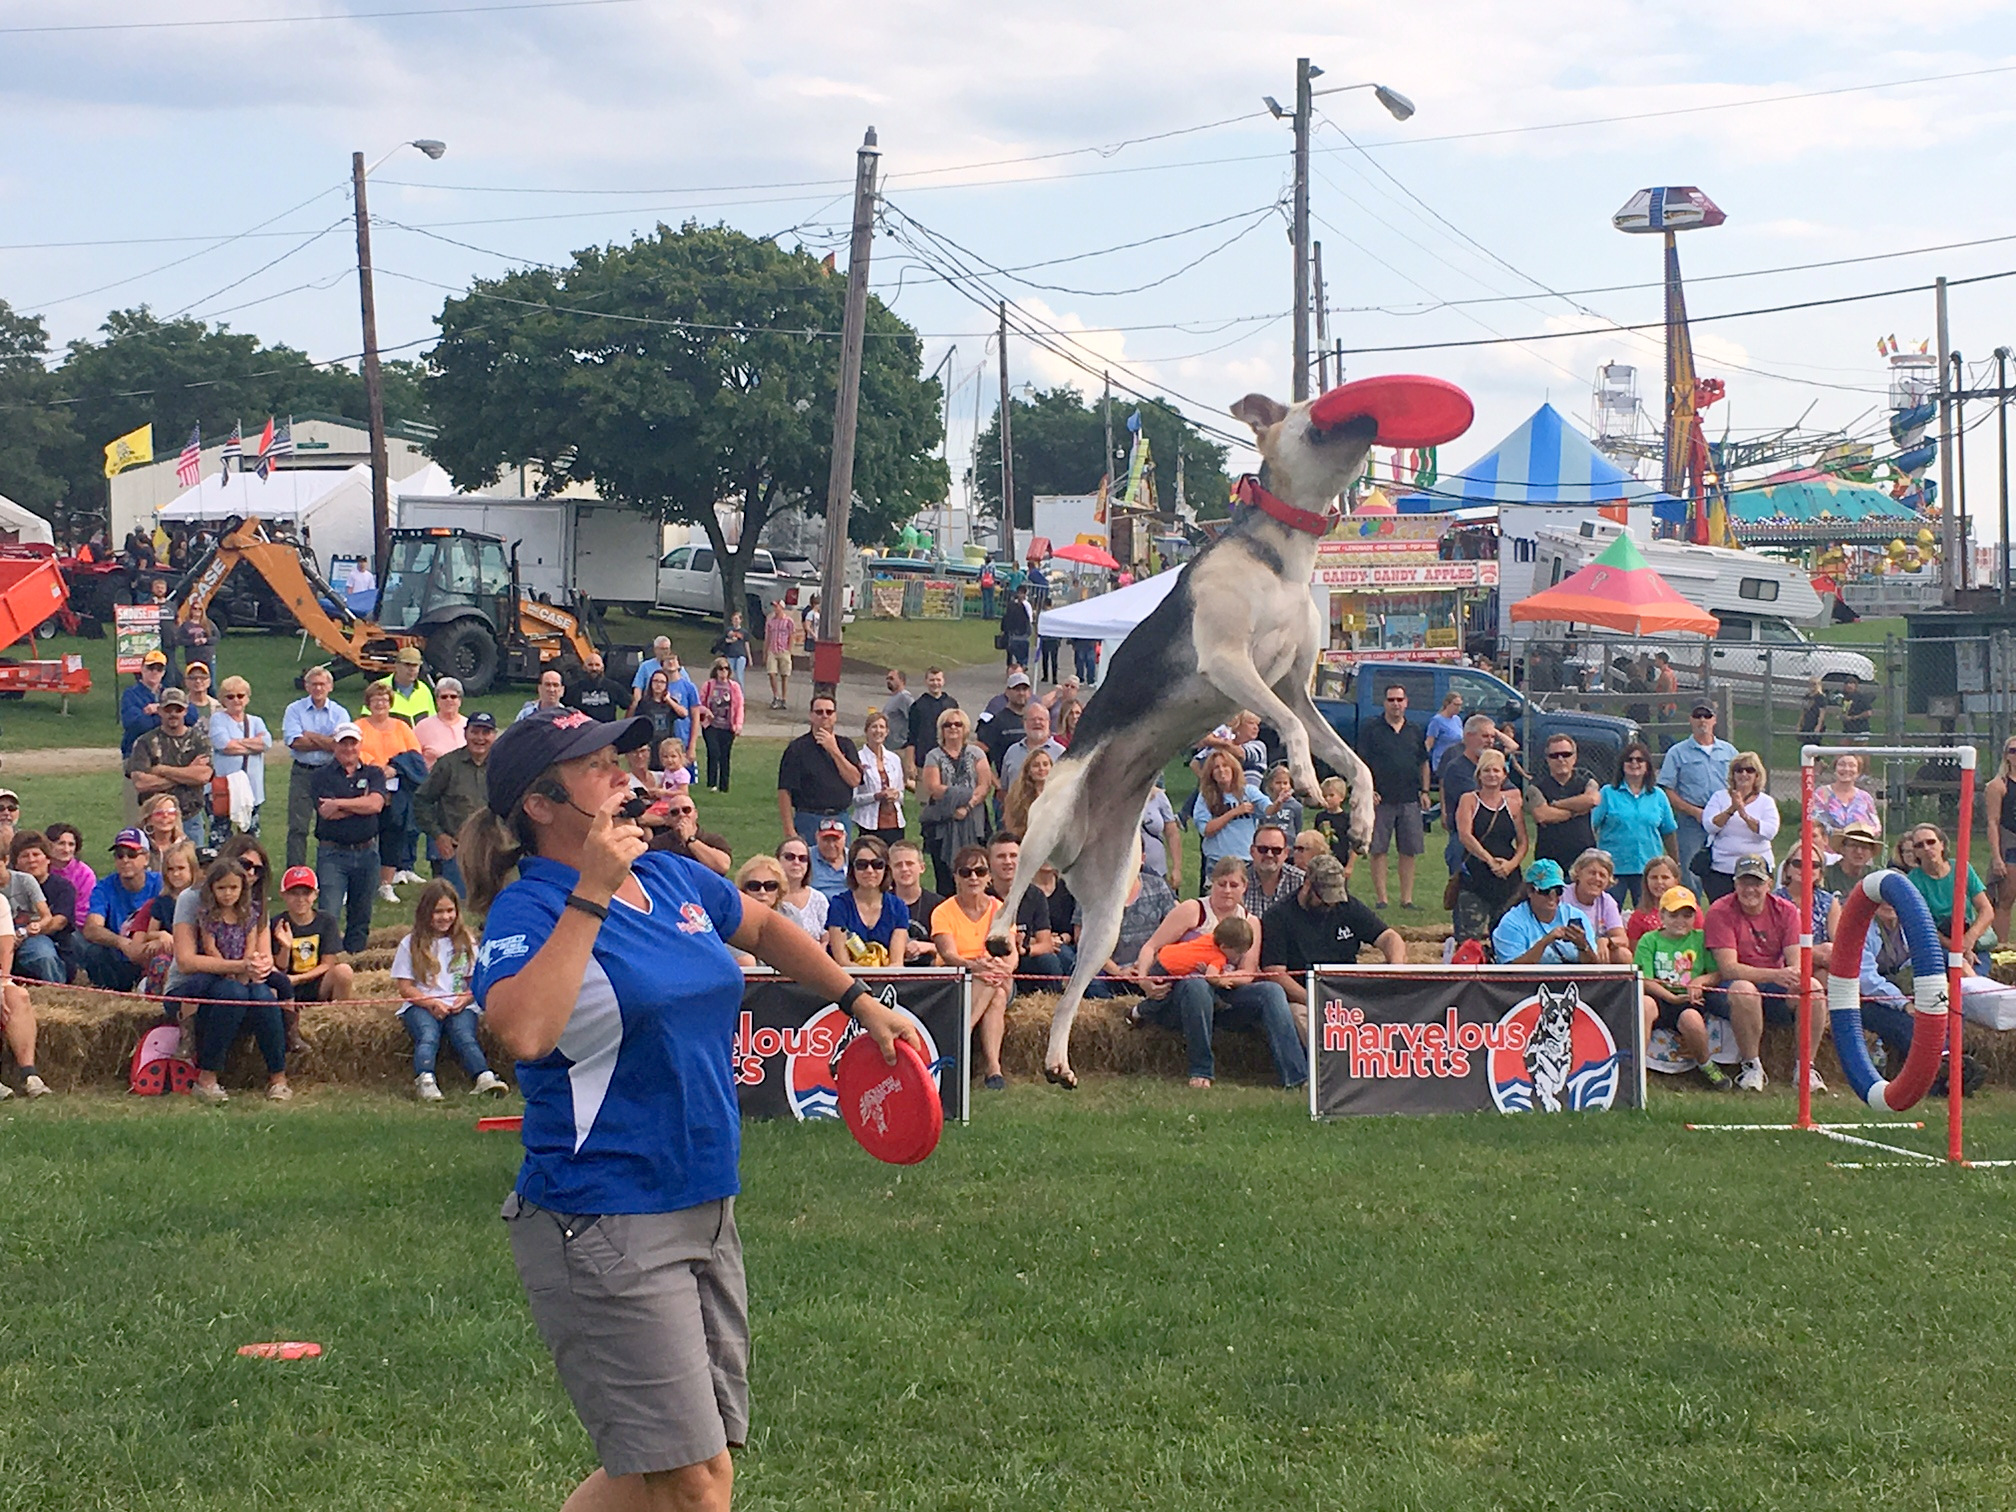 Shazam! wowing the crowd at the Westmoreland Fair!